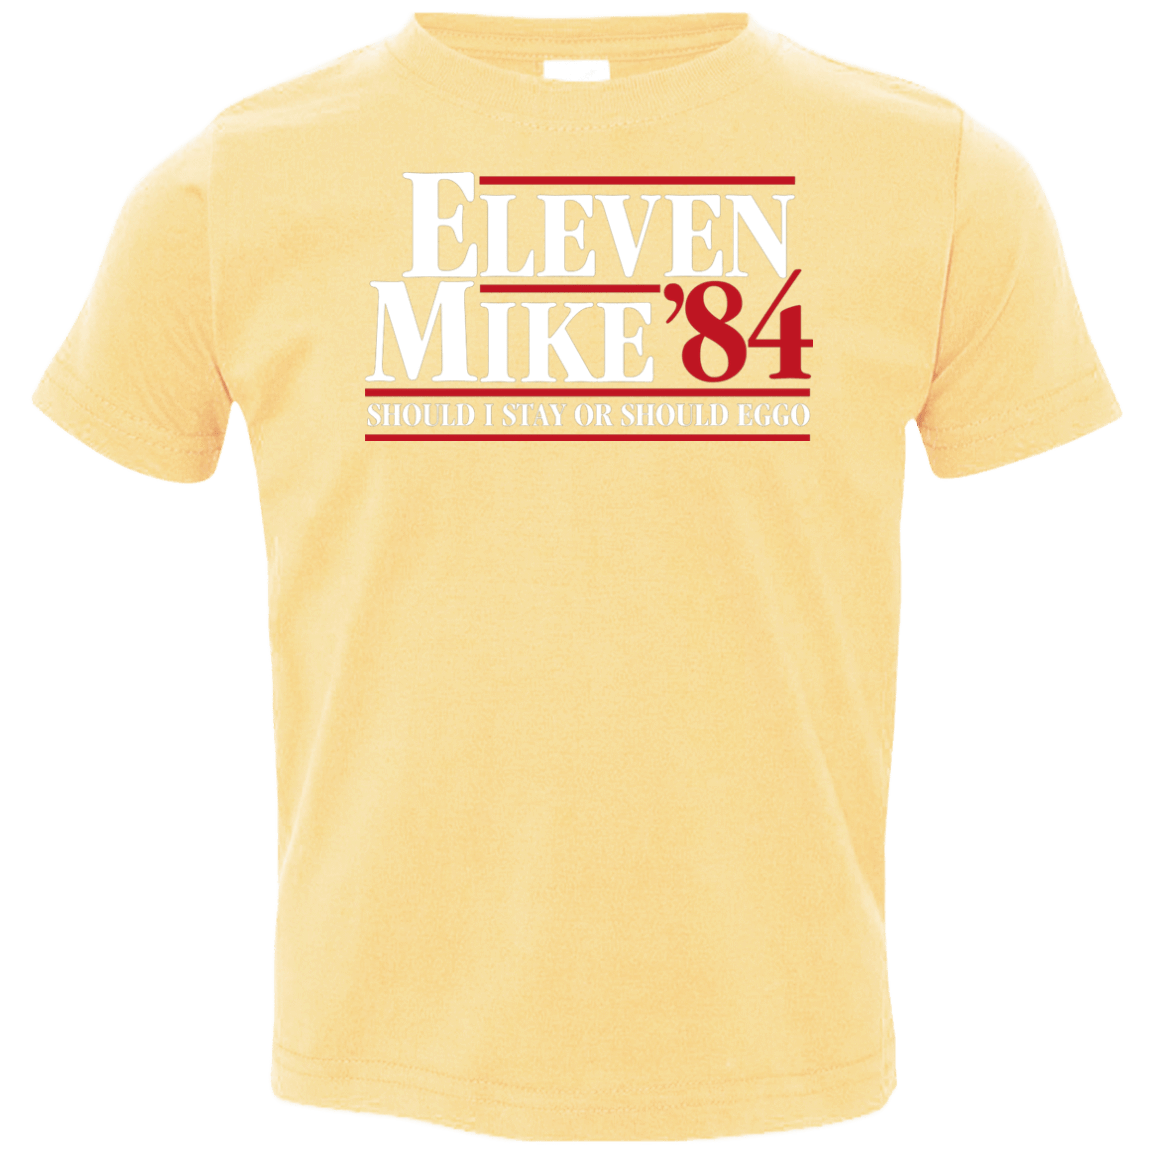 T-Shirts Butter / 2T Eleven Mike 84 - Should I Stay or Should Eggo Toddler Premium T-Shirt